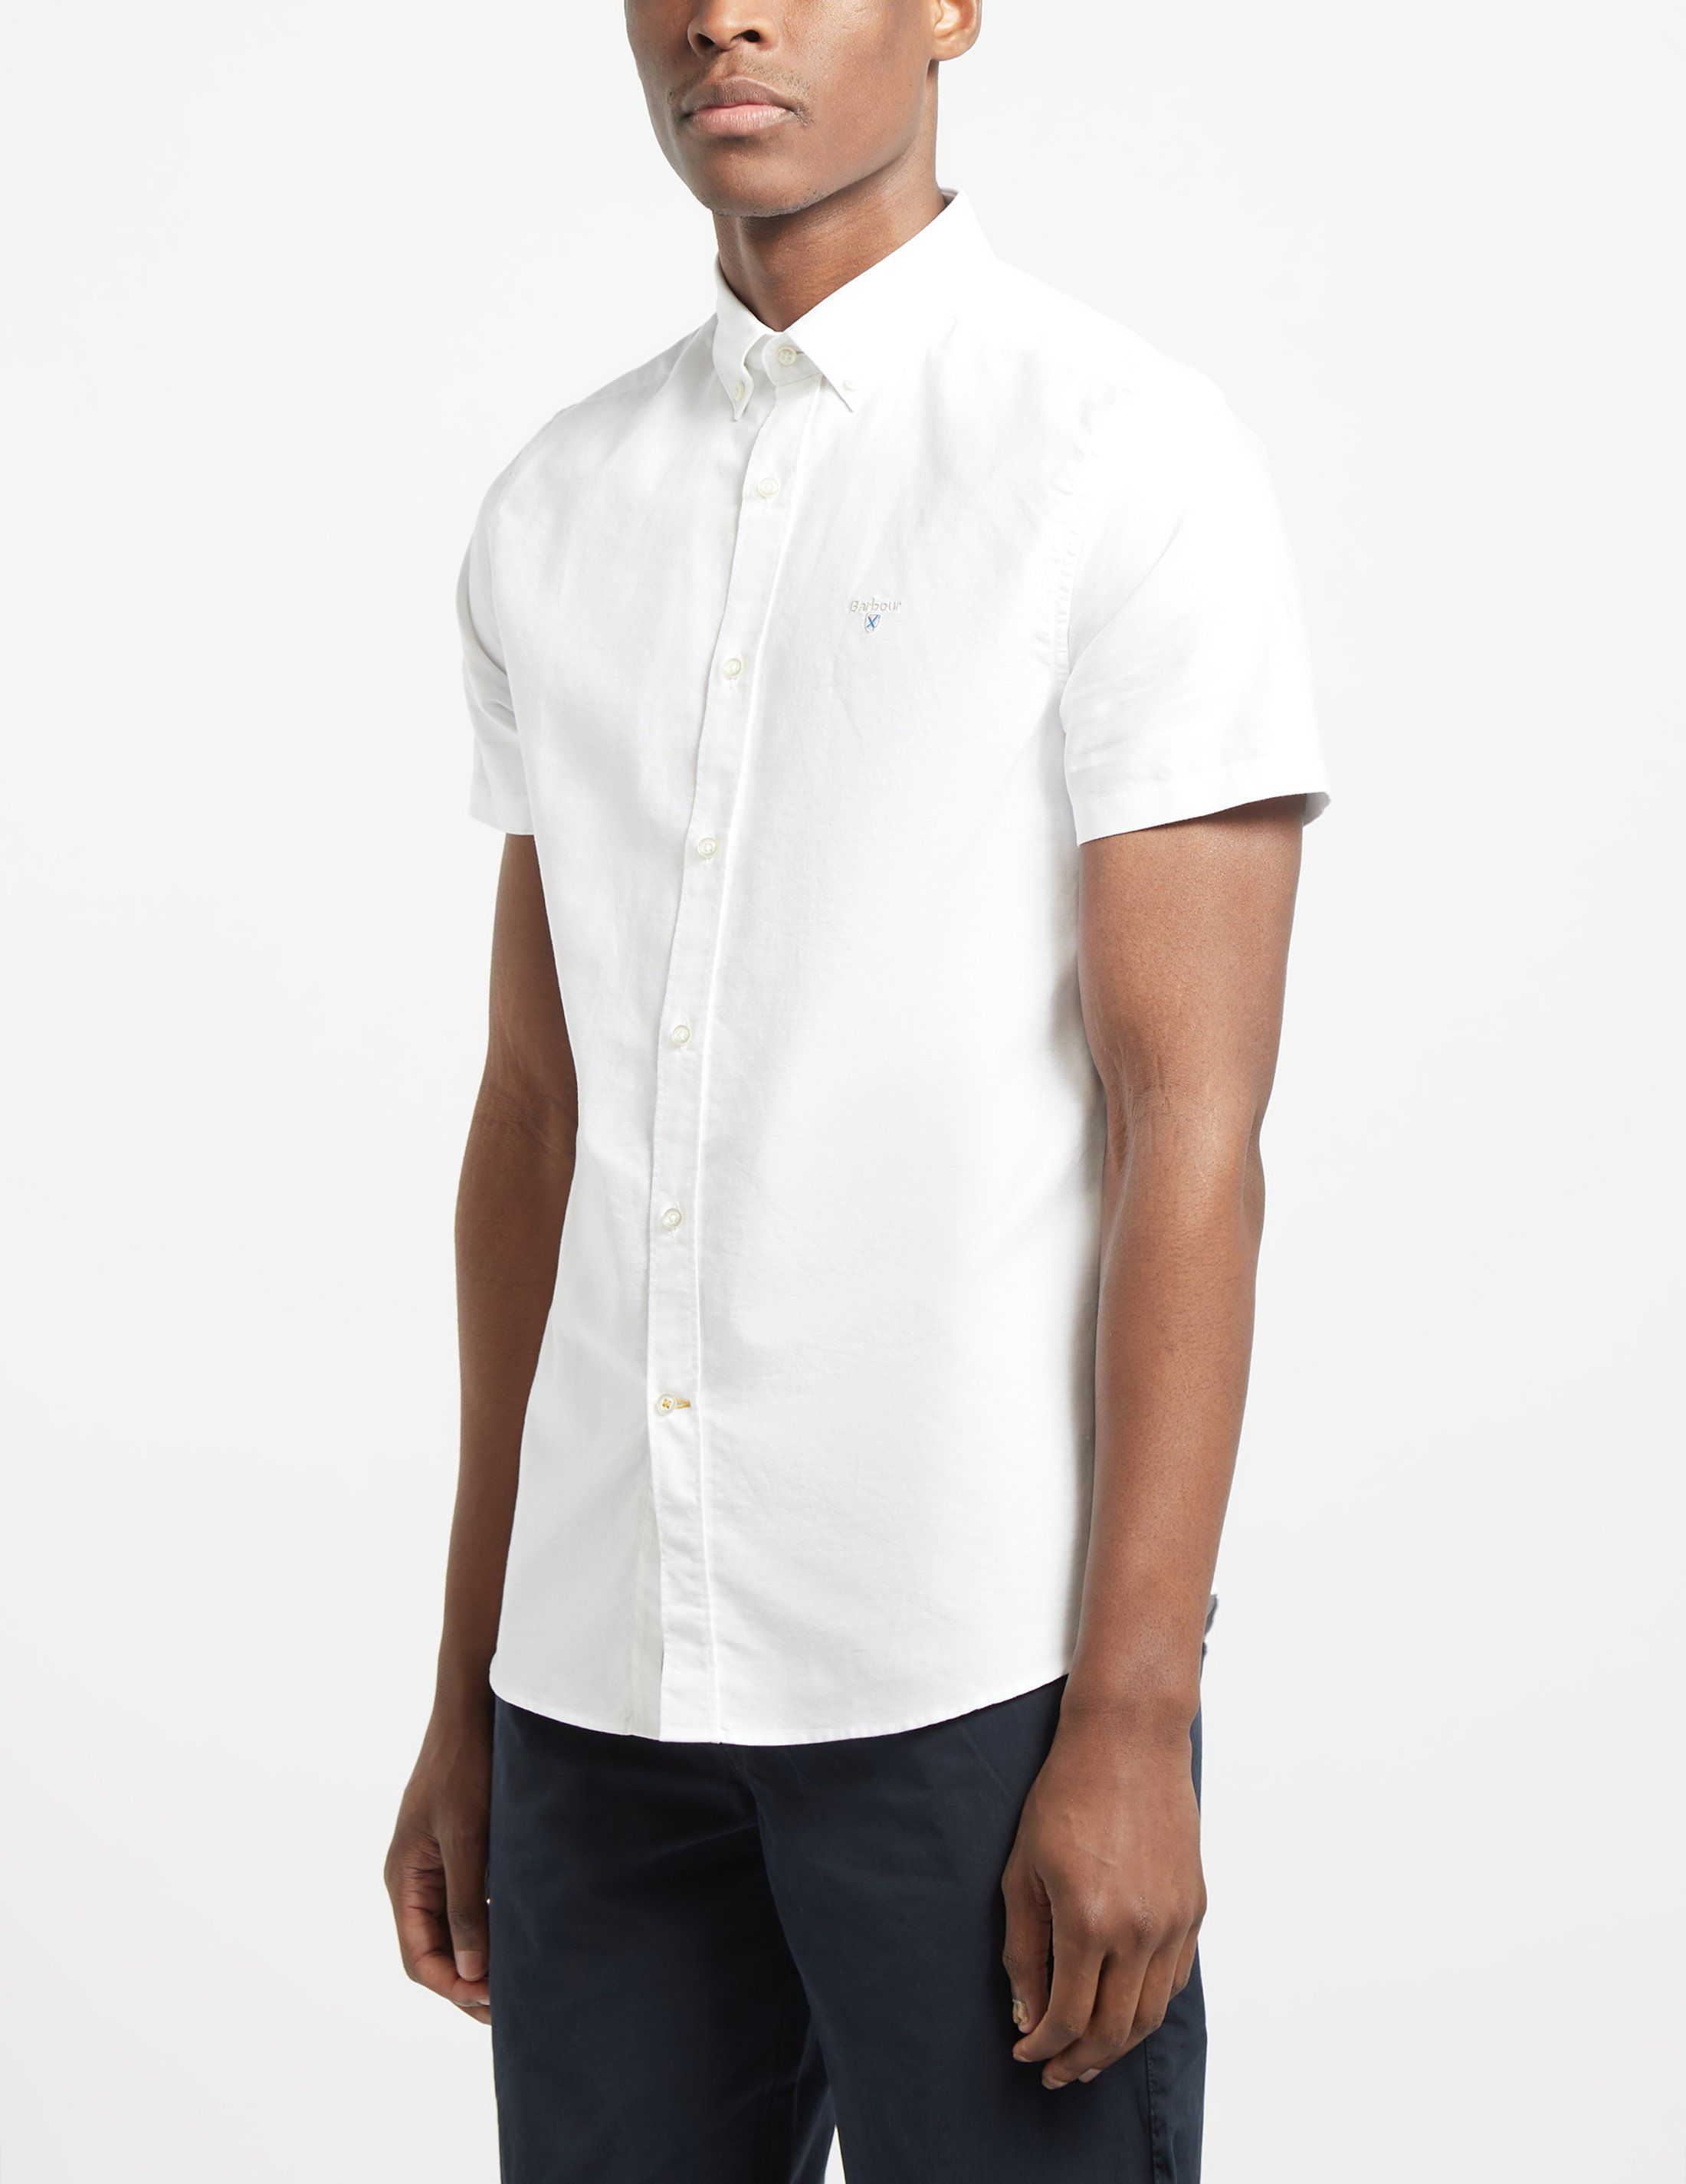 Barbour Short Sleeve Oxford Shirt